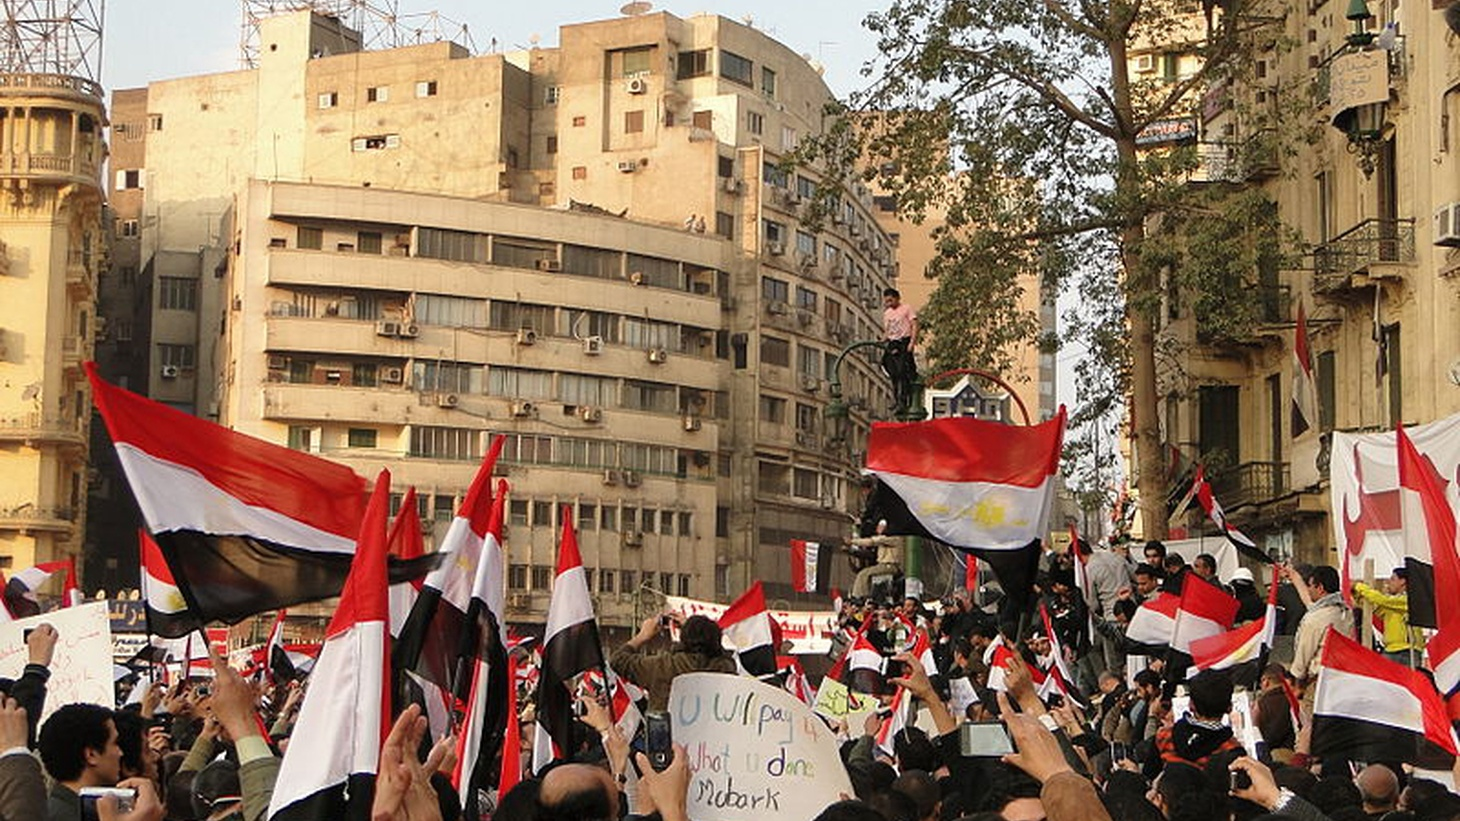 """Five years later, the """"Arab Spring"""" is more often called the """"Arab Uprising."""" Instead of producing new democracies, rebellions have led to renewed repression in some places and chaos in others. Nevertheless, it may be too soon to declare """"failure."""""""